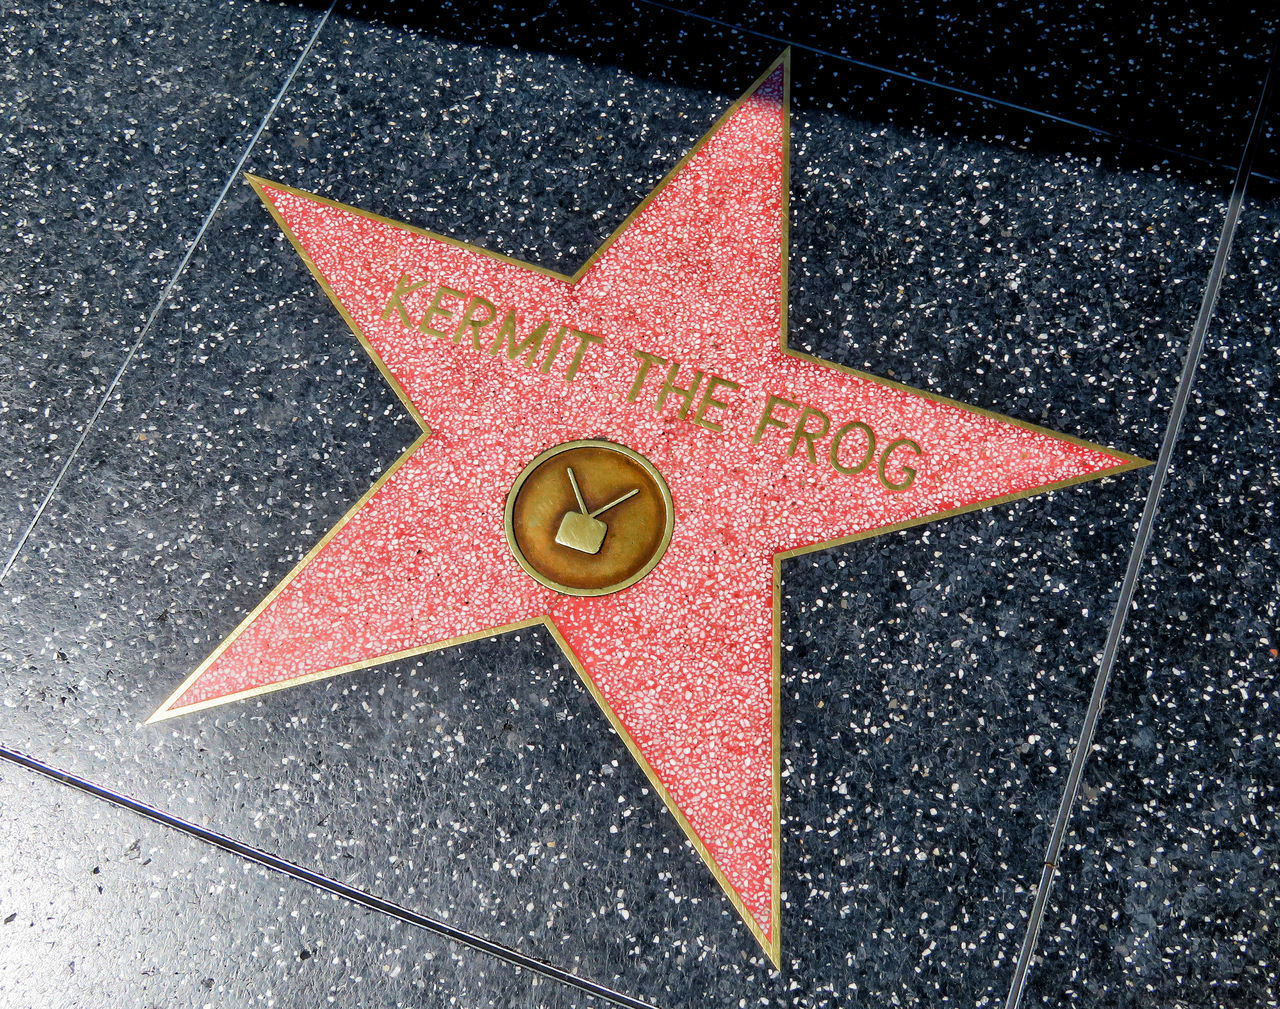 Walk of Fame - Hollywood America California Celebrities Hollywood Kermit The Frog Moviestar Muppets No People Star Terrazzo Walk Of Fame